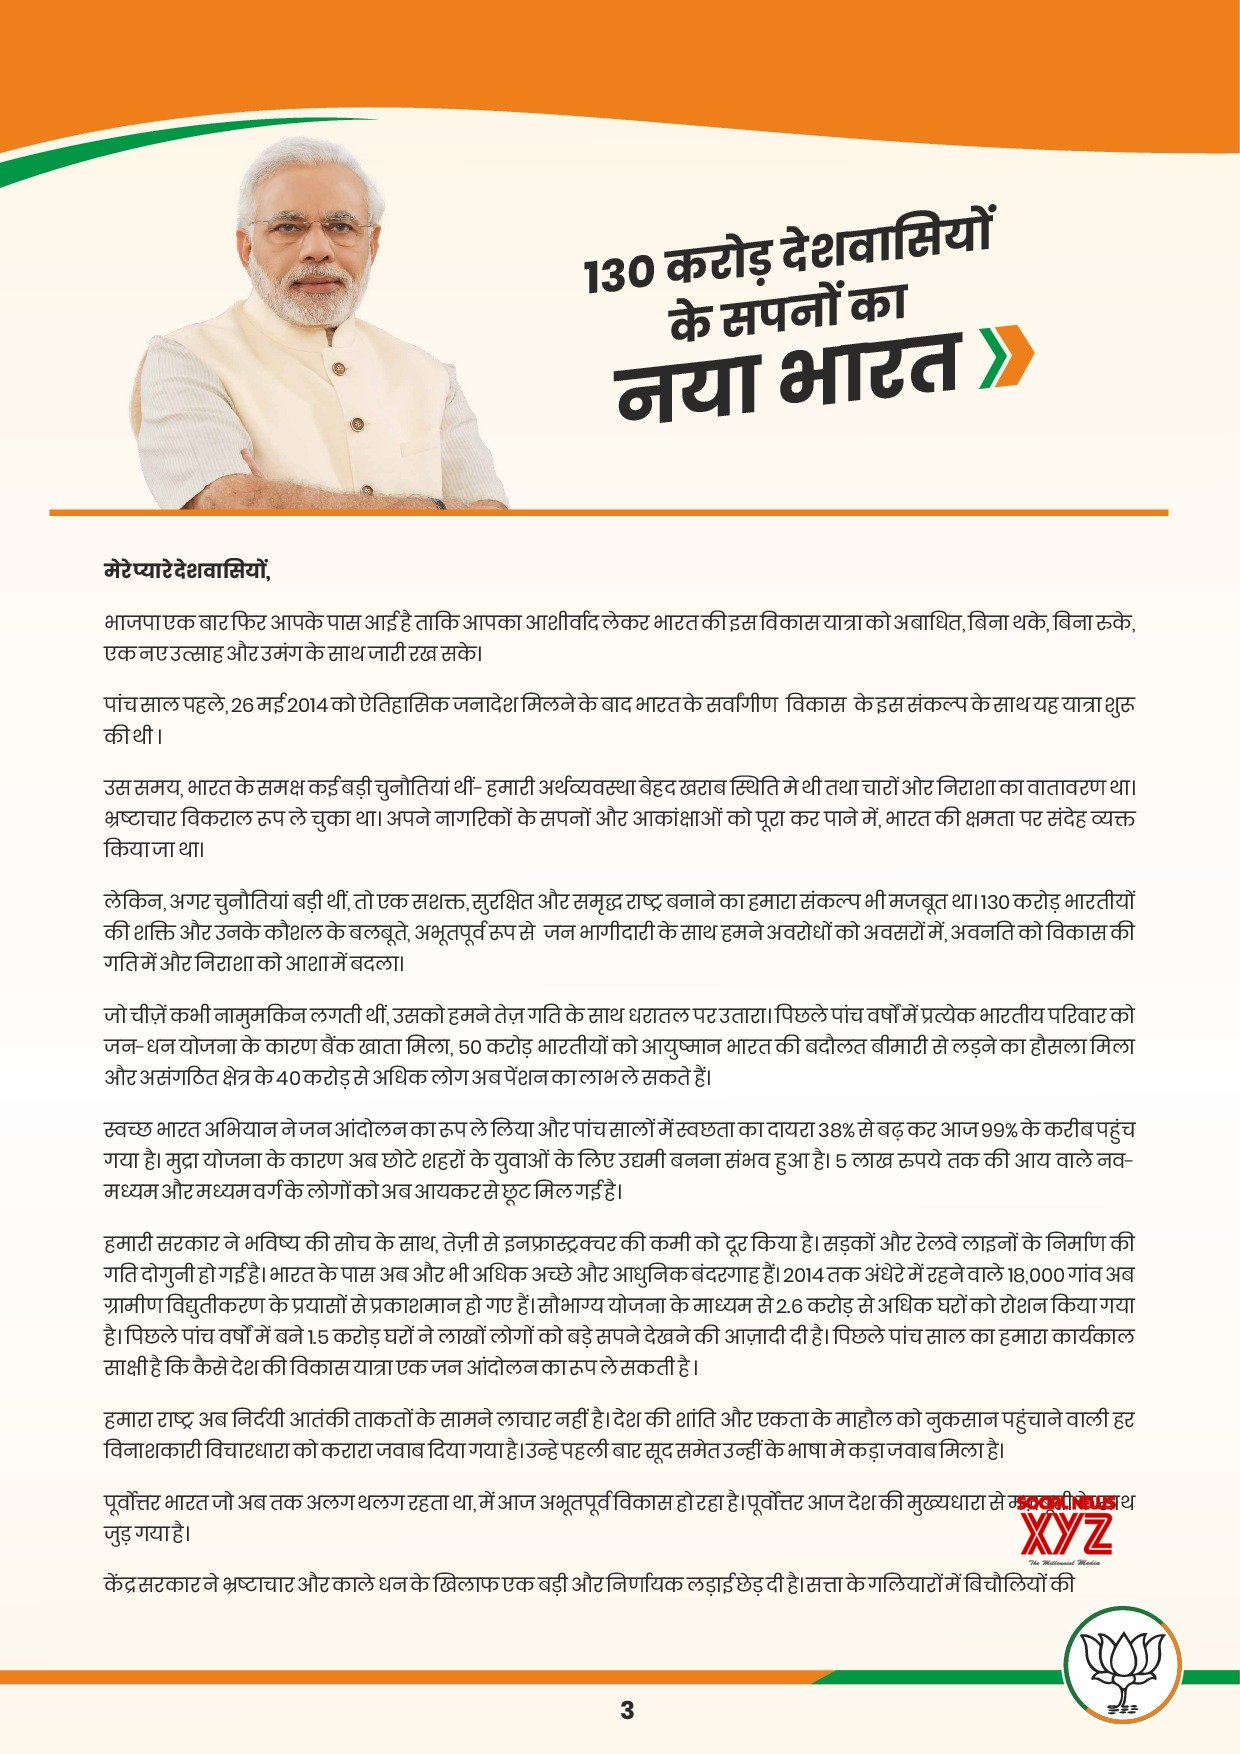 BJP Manifesto For Elections 2019 In Hindi Gallery And PDF